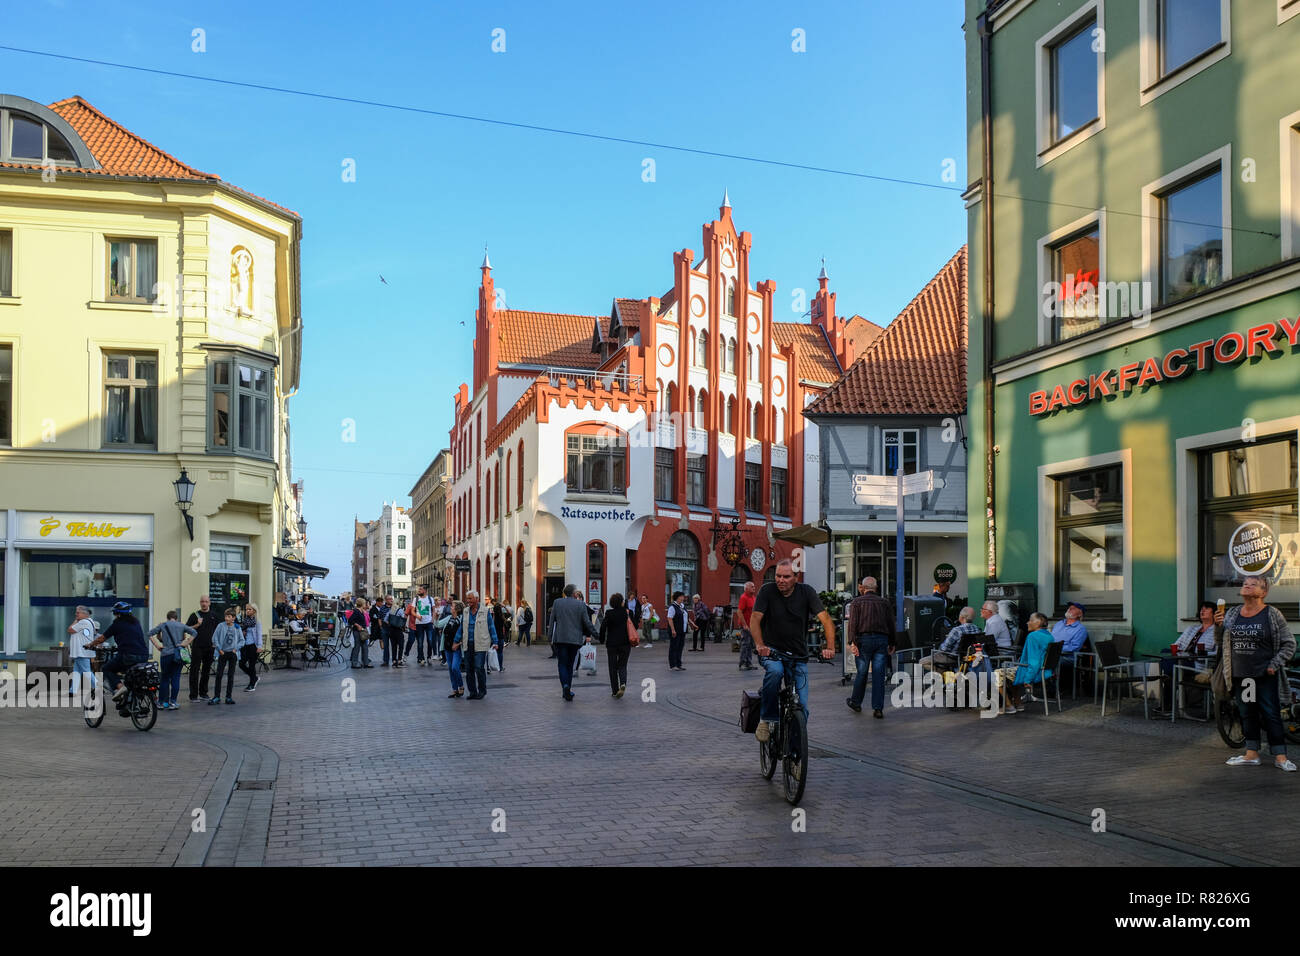 WISMAR/GERMANY - OCTOBER 2018: Historical city center and old houses in Wismar during sunny day during fall - Stock Image